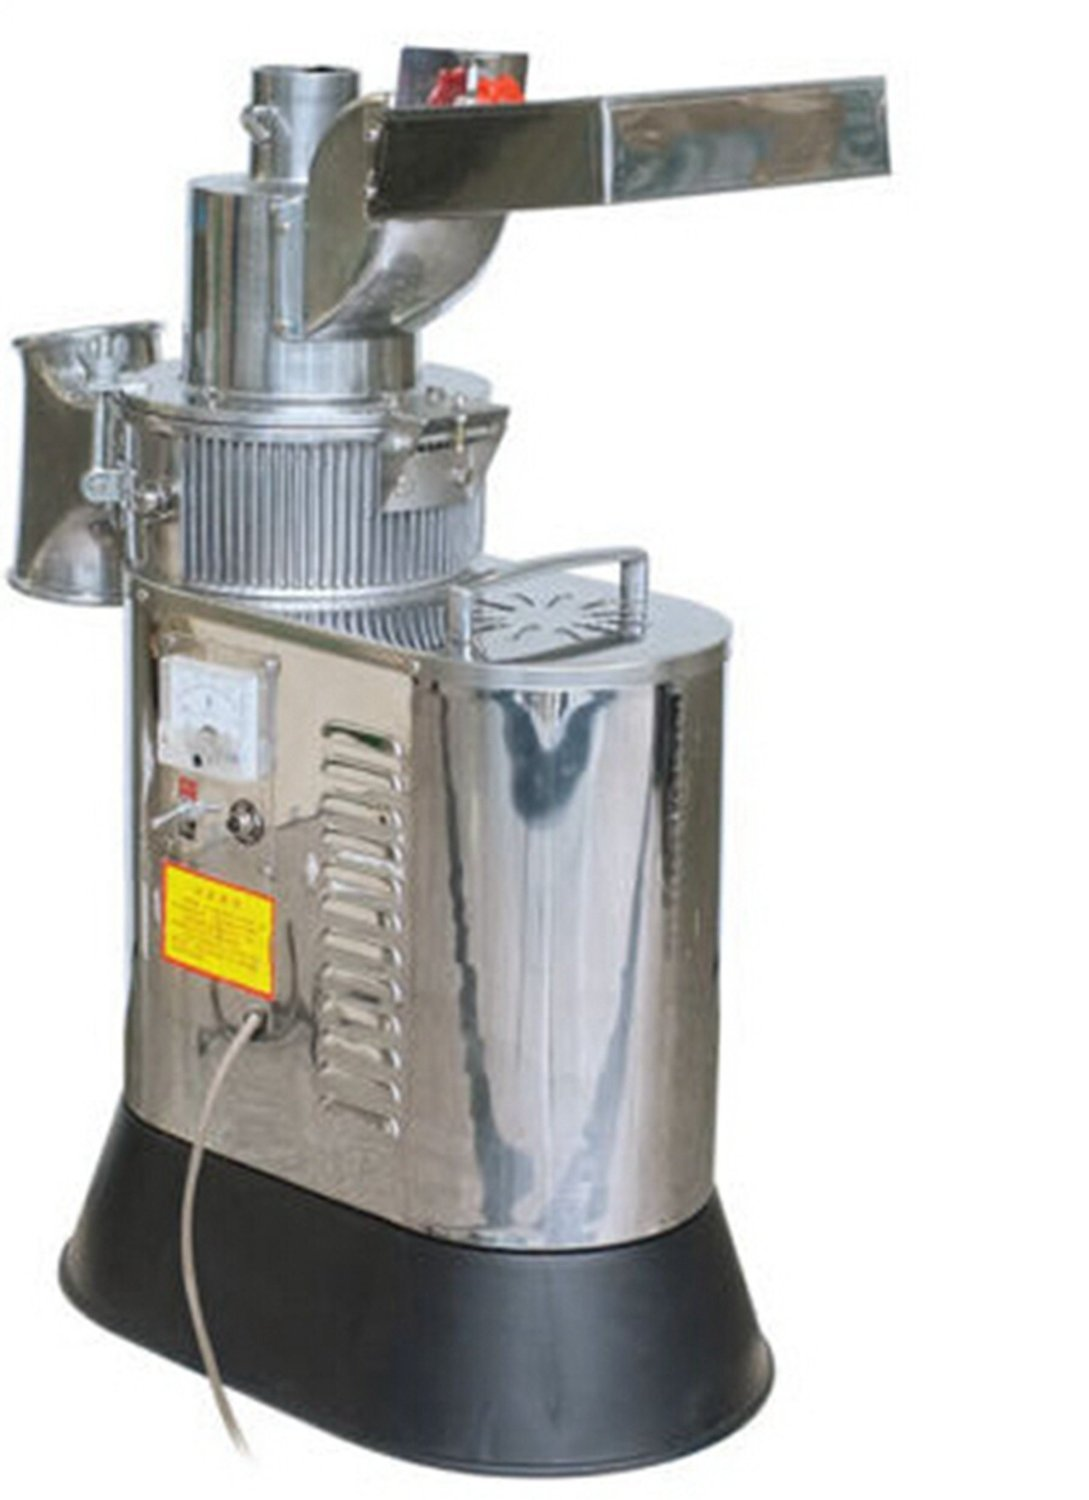 Cyana TOP NEW 40kg/h Automatic Floor-standing Continuous Hammer Mill Herb Grinder Pulverizer by Cyanalab Shop (Image #1)